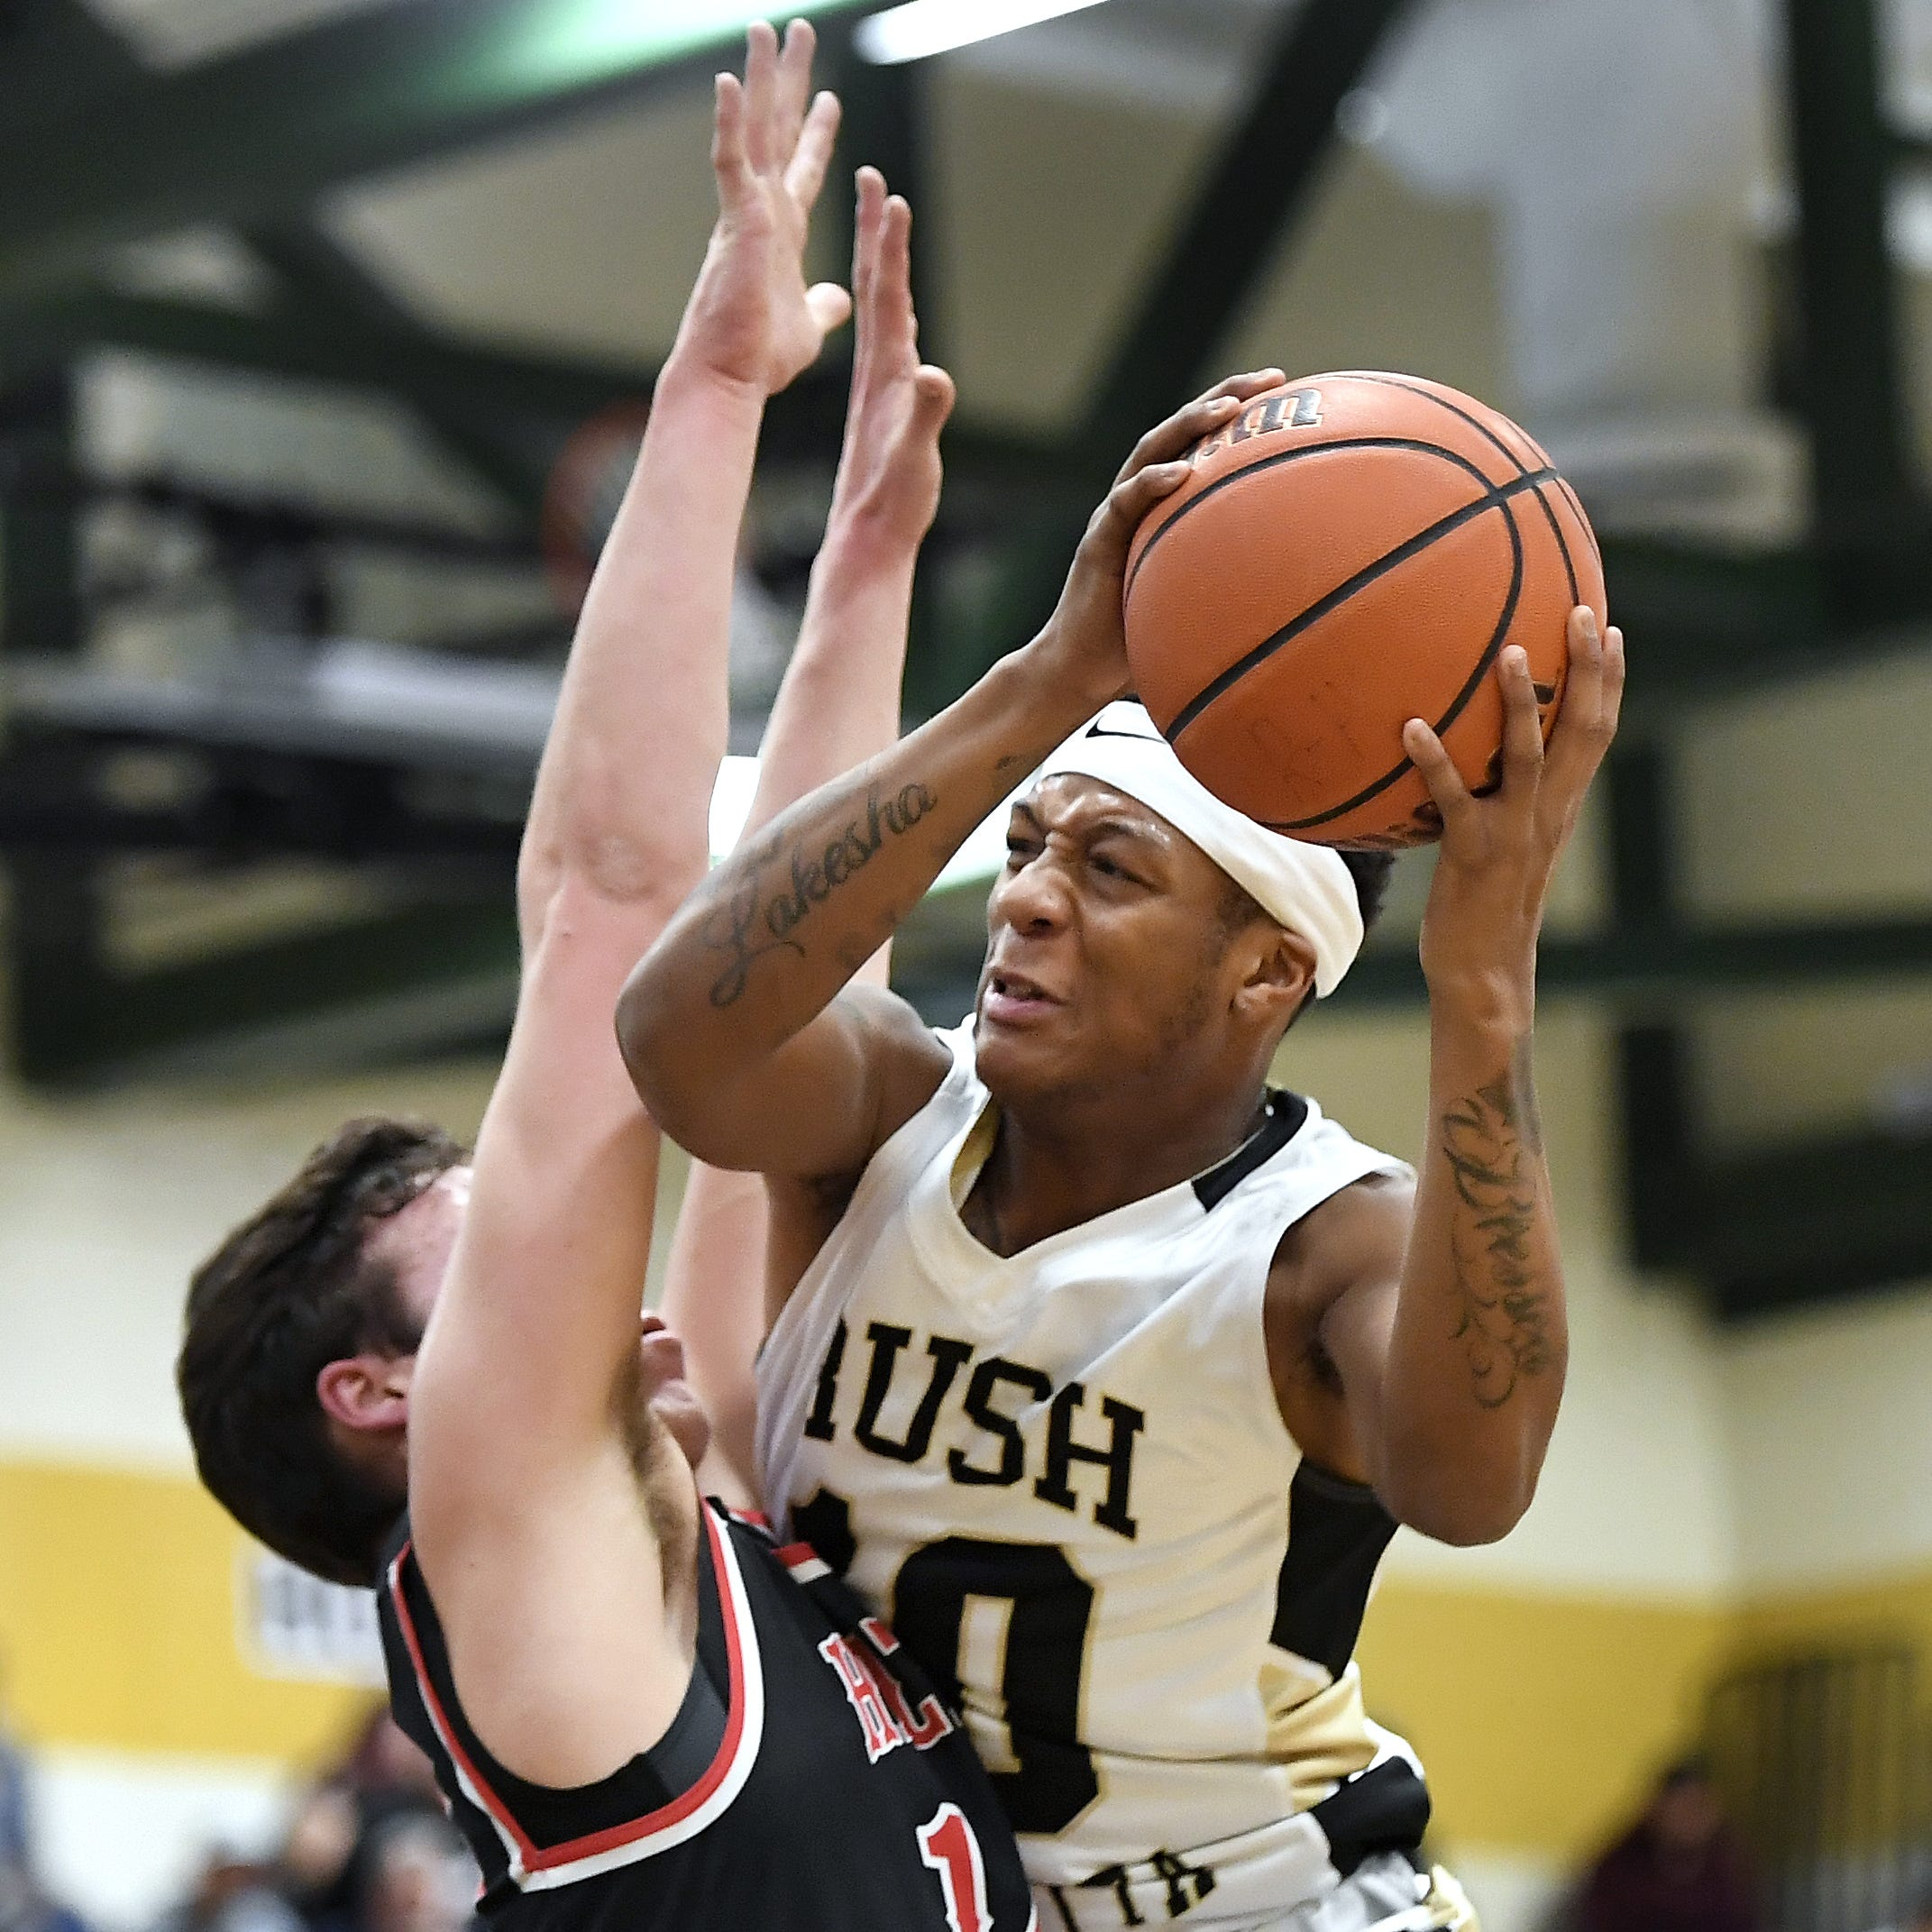 Rush-Henrietta's Timmy Jackson, right, is defended by Hilton's Mitchell Carr during a regular season game played at Rush-Henrietta High School, Friday, Dec. 7, 2018. Hilton beat Rush-Henrietta 61-47.